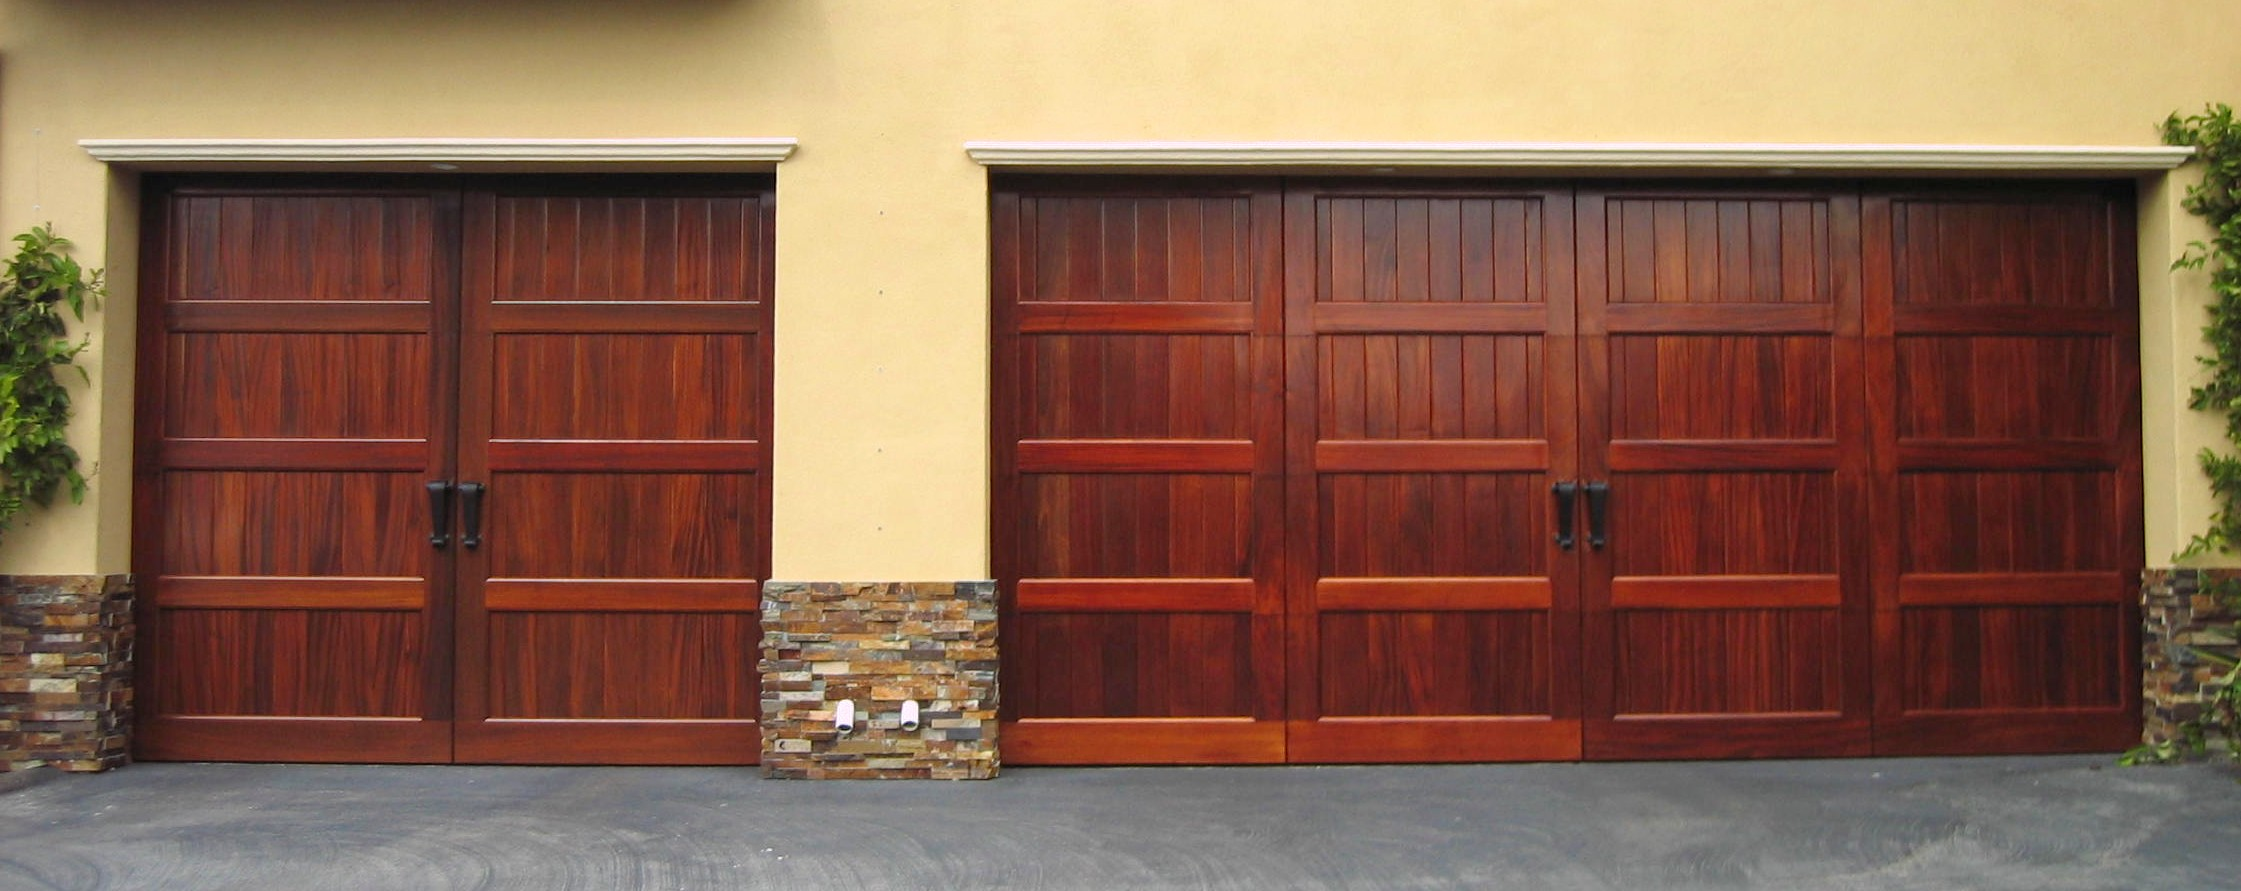 Wood-Custom-Garage-Door-San-Diego-by-Radford-Garage-Doors